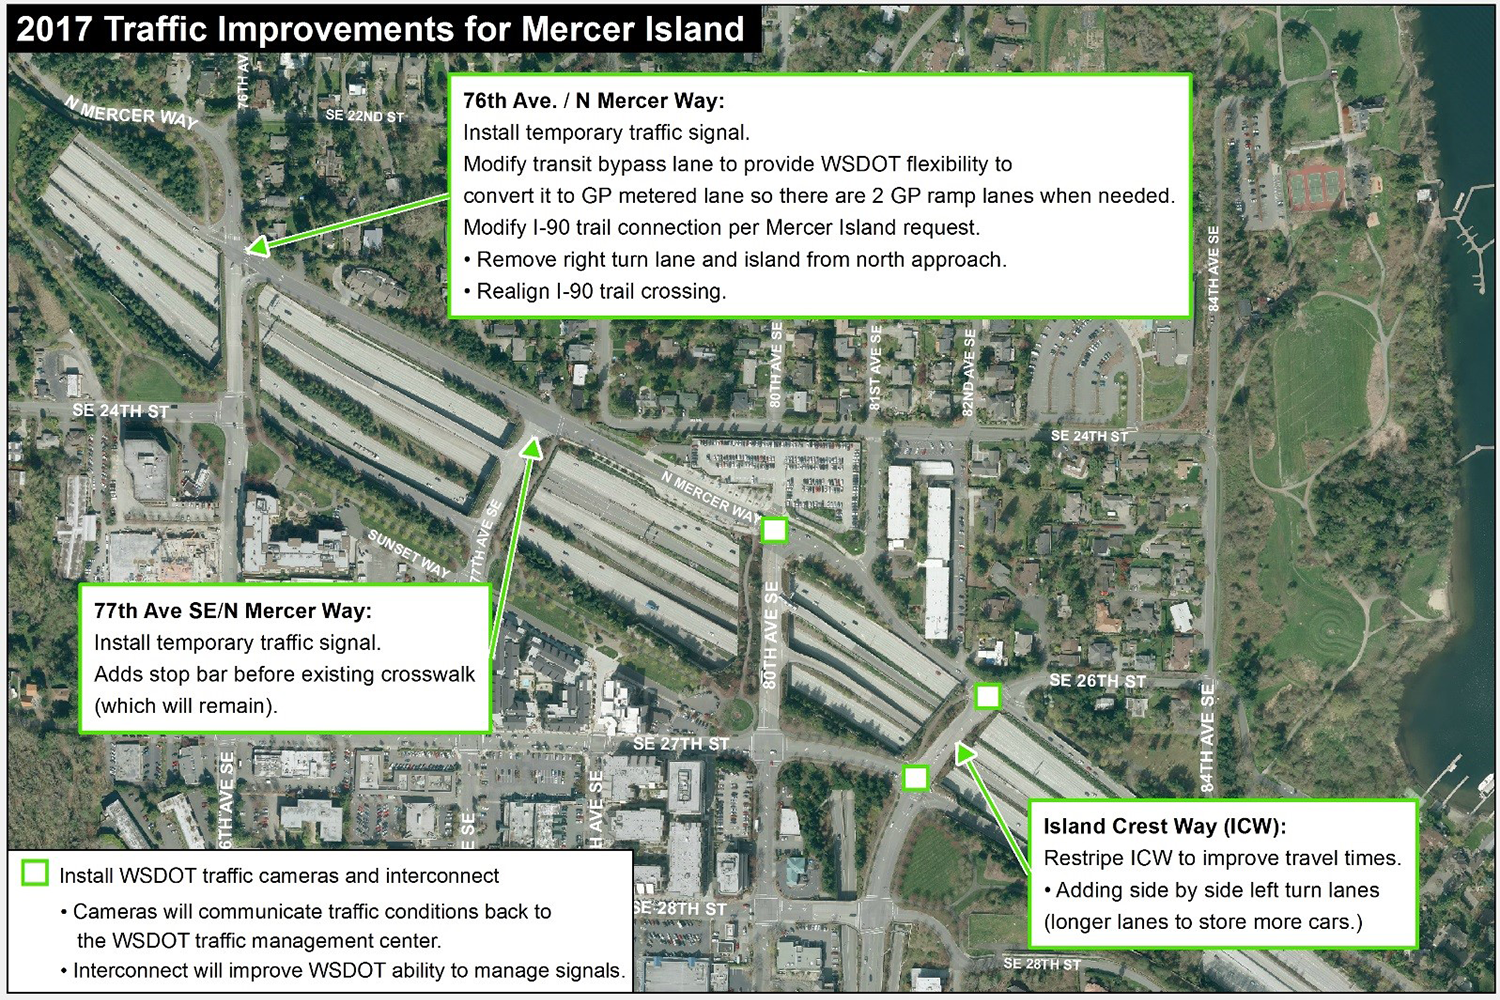 2017 Mercer Island traffic improvement map.